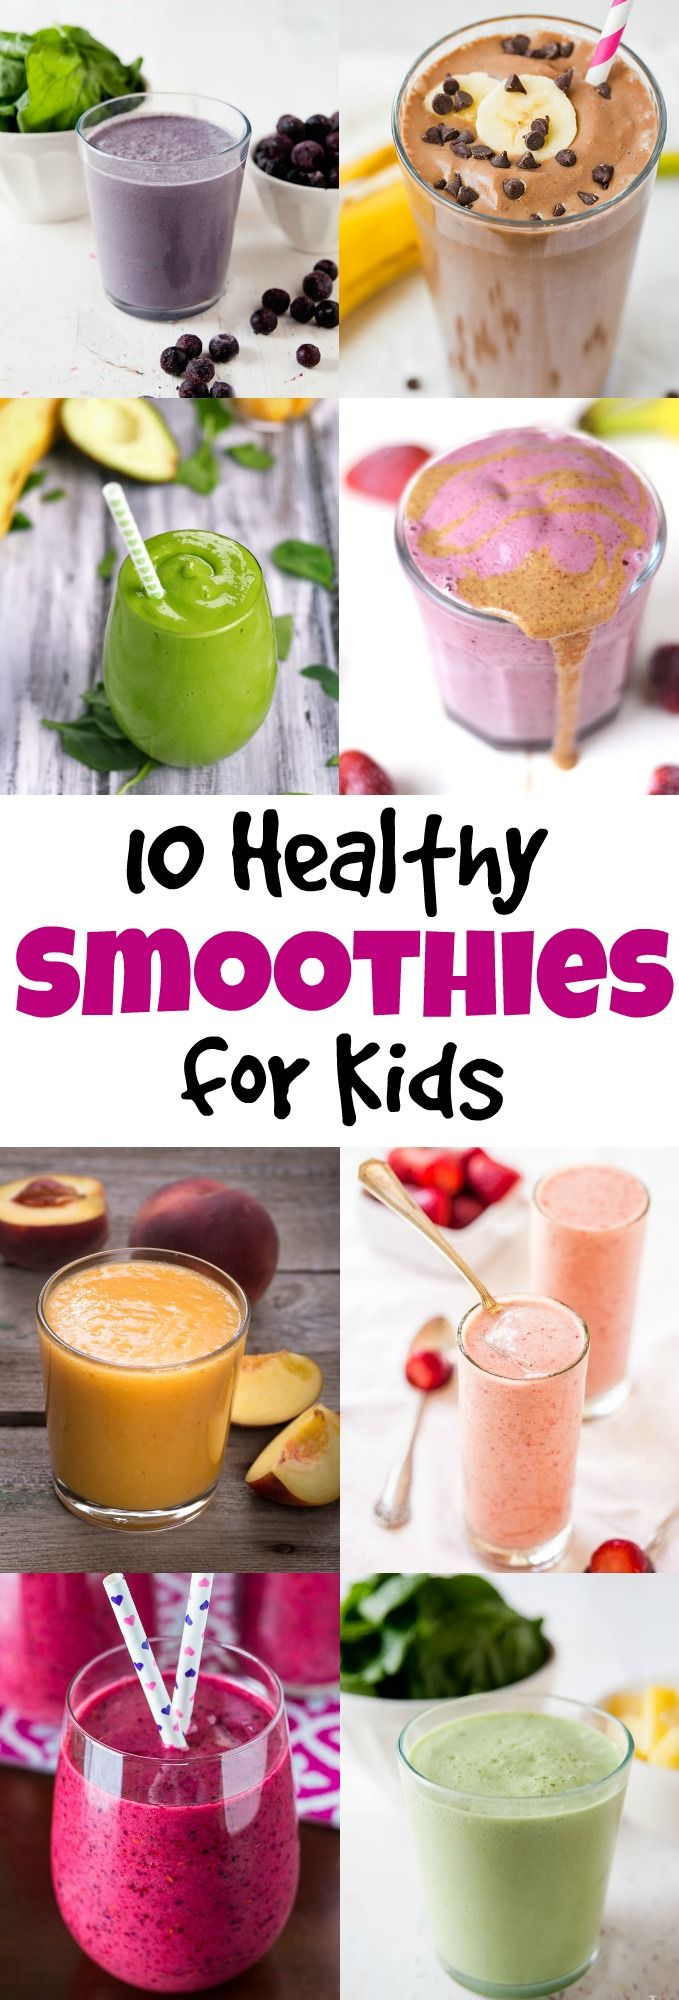 10 Healthy Smoothies for KidsLaura Fuentes – MOMables